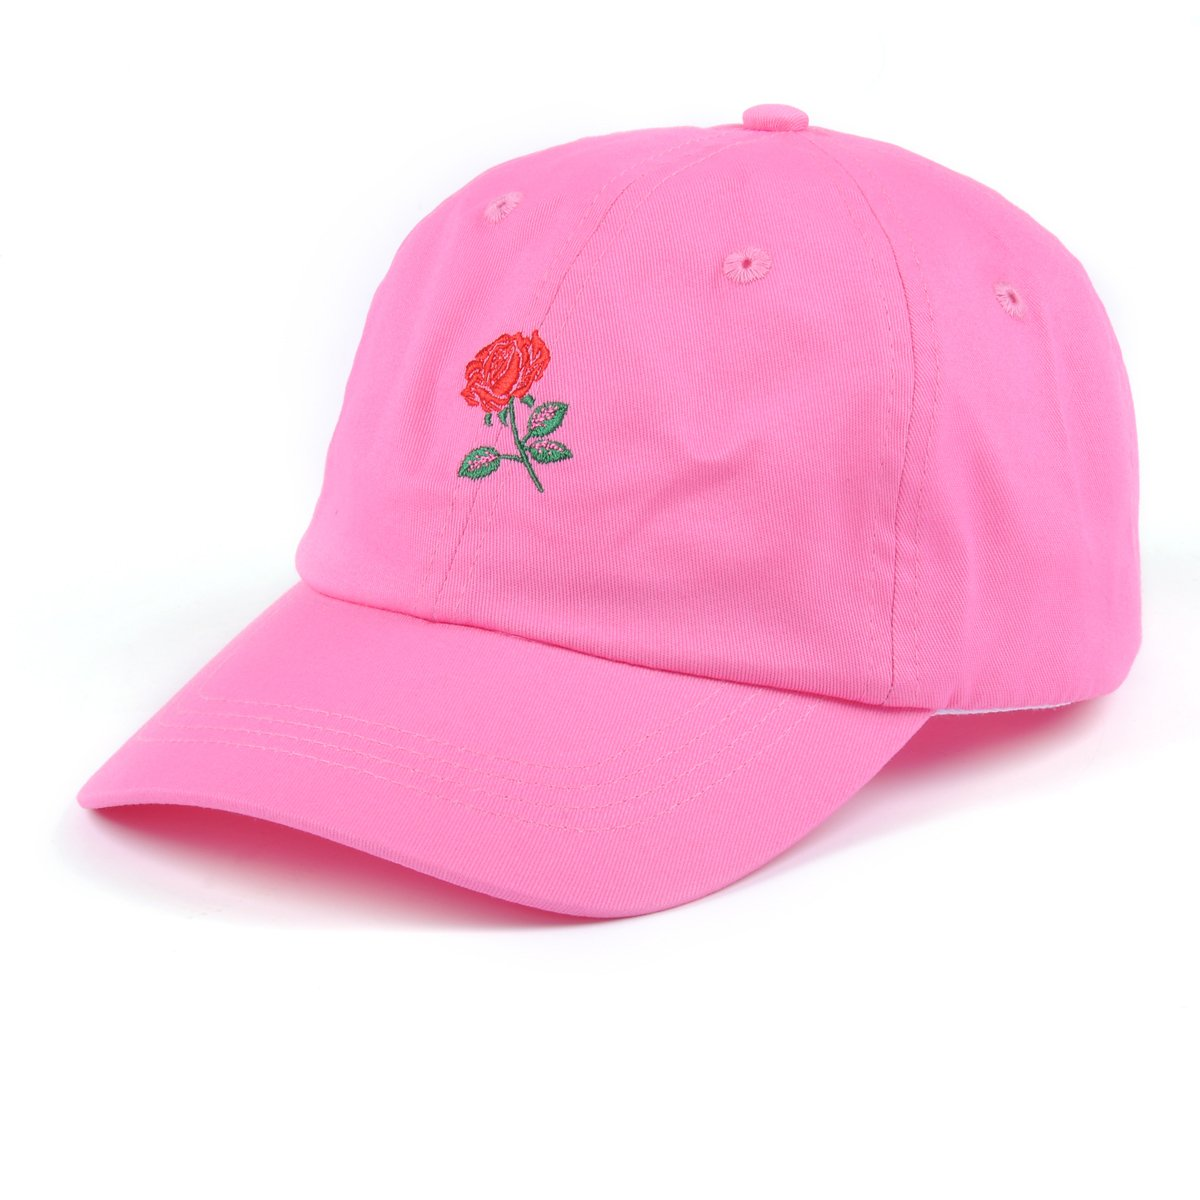 f61eb726 Get Quotations · AUNG CROWN Rose Embroidered Dad Hat Women Men Cute  Adjustable Cotton Floral Baseball Cap